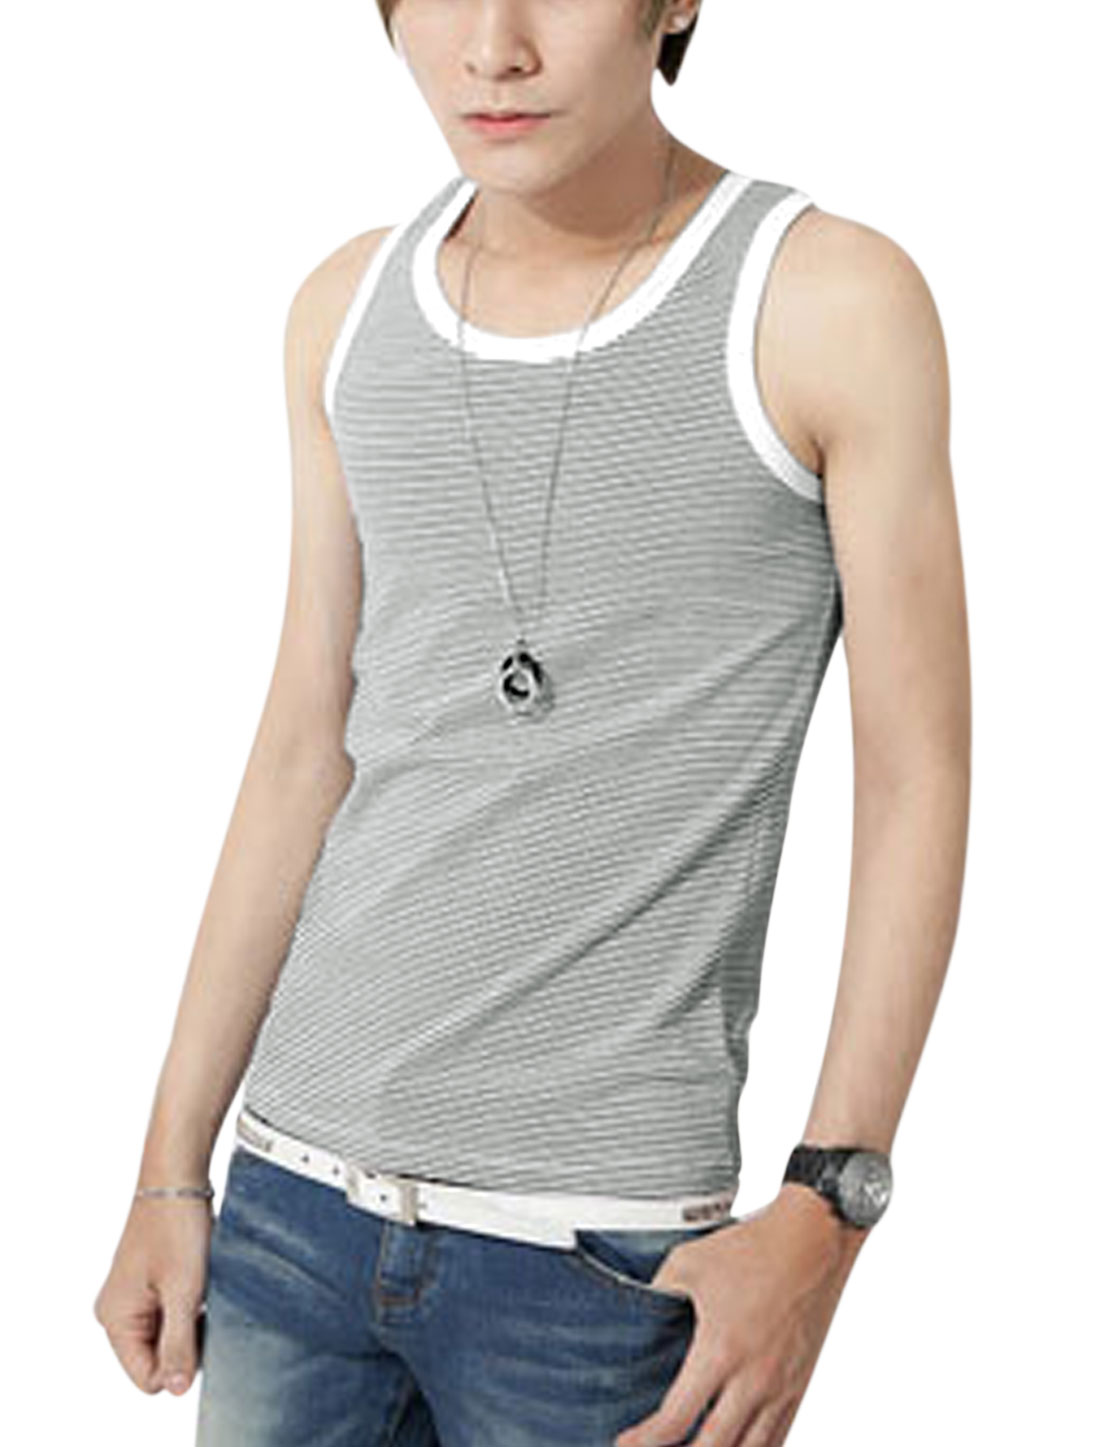 Man Summer Fit U Neck Stripes Print Tank Top Gray White S